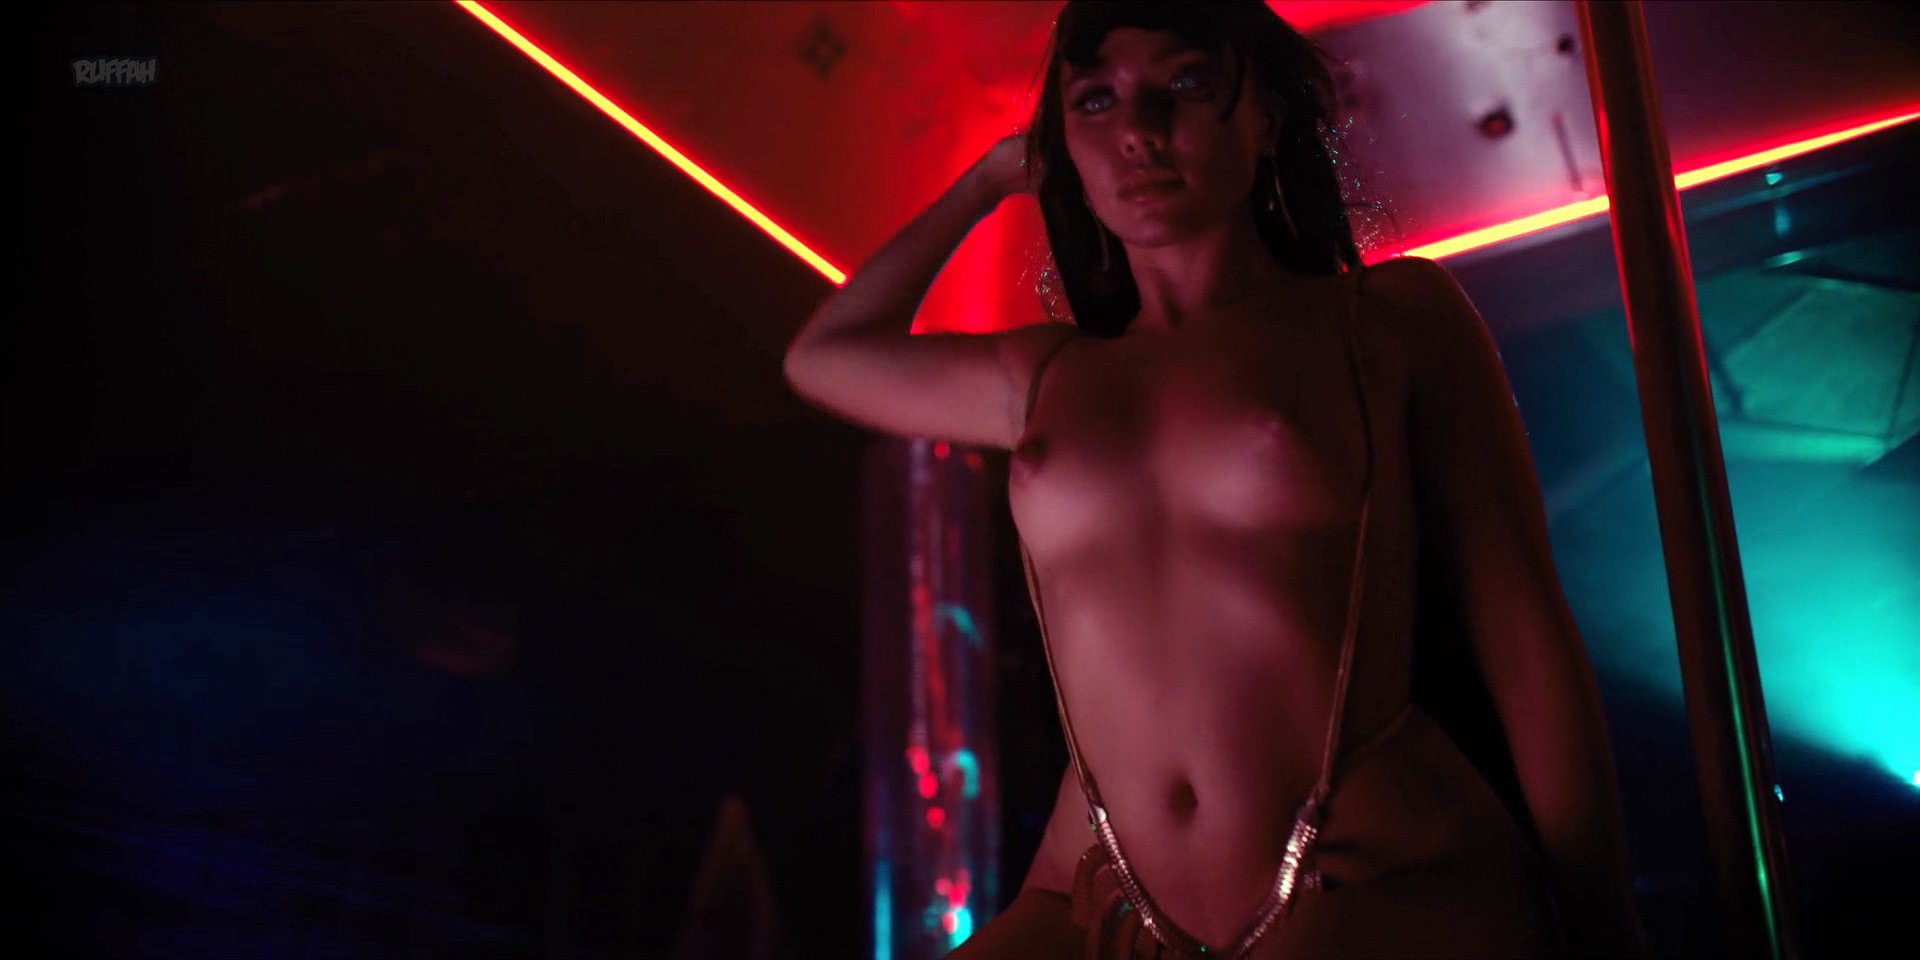 Lisa Chandler nude, Kat Pasion nude - Altered Carbon s01e0 (2018)